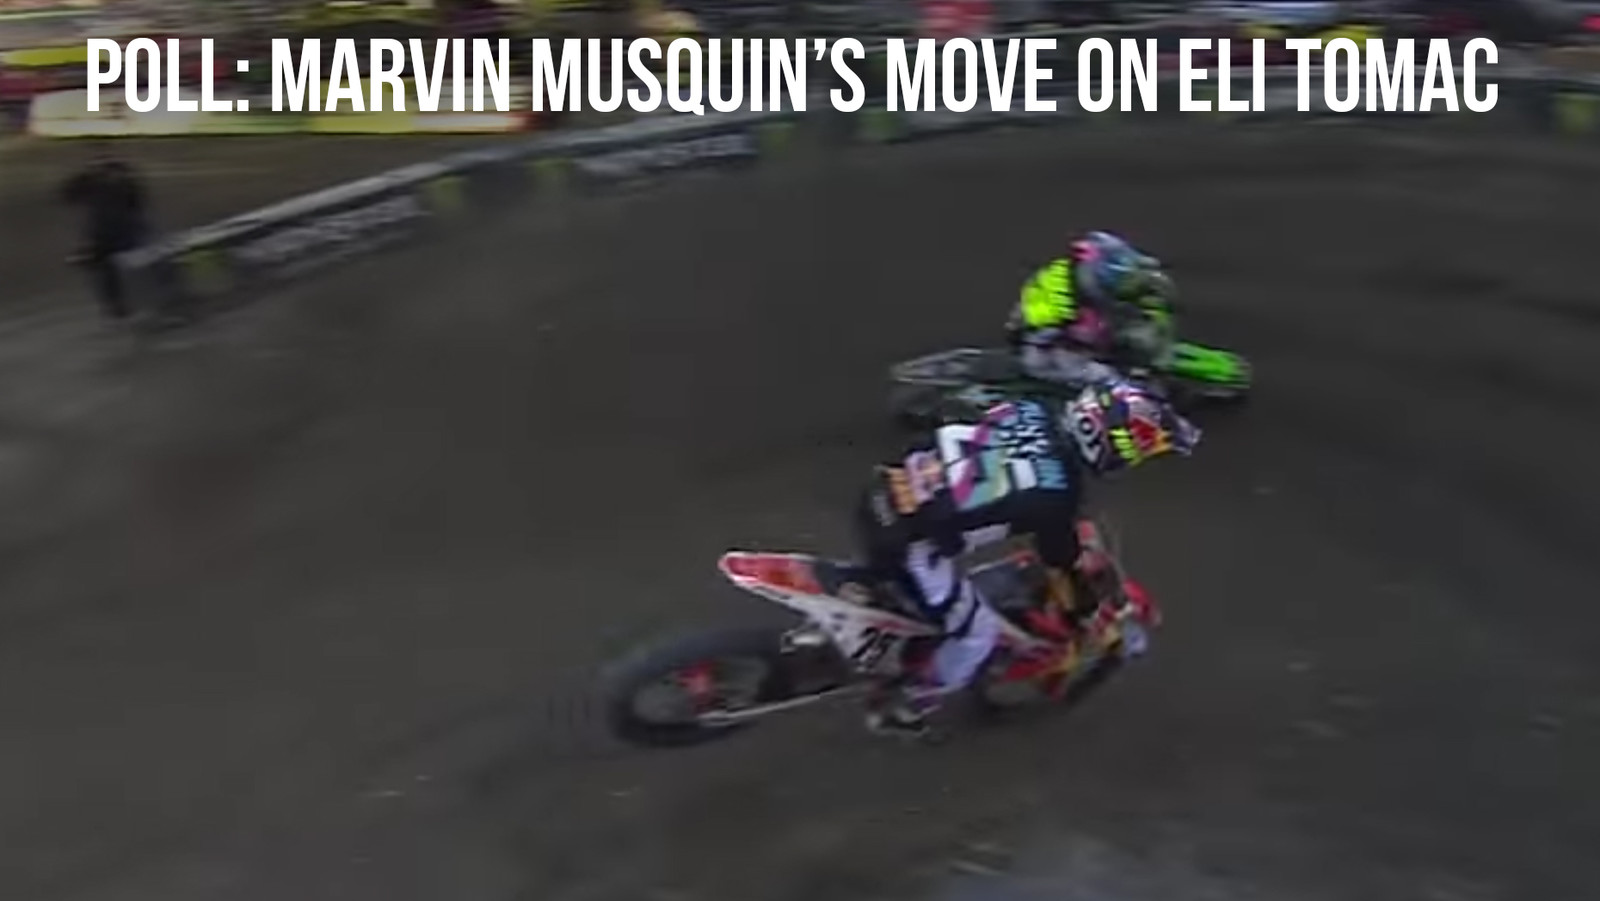 POLL: Marvin Musquin's Pass on Eli Tomac - Plus the Moto Industry Weighs In